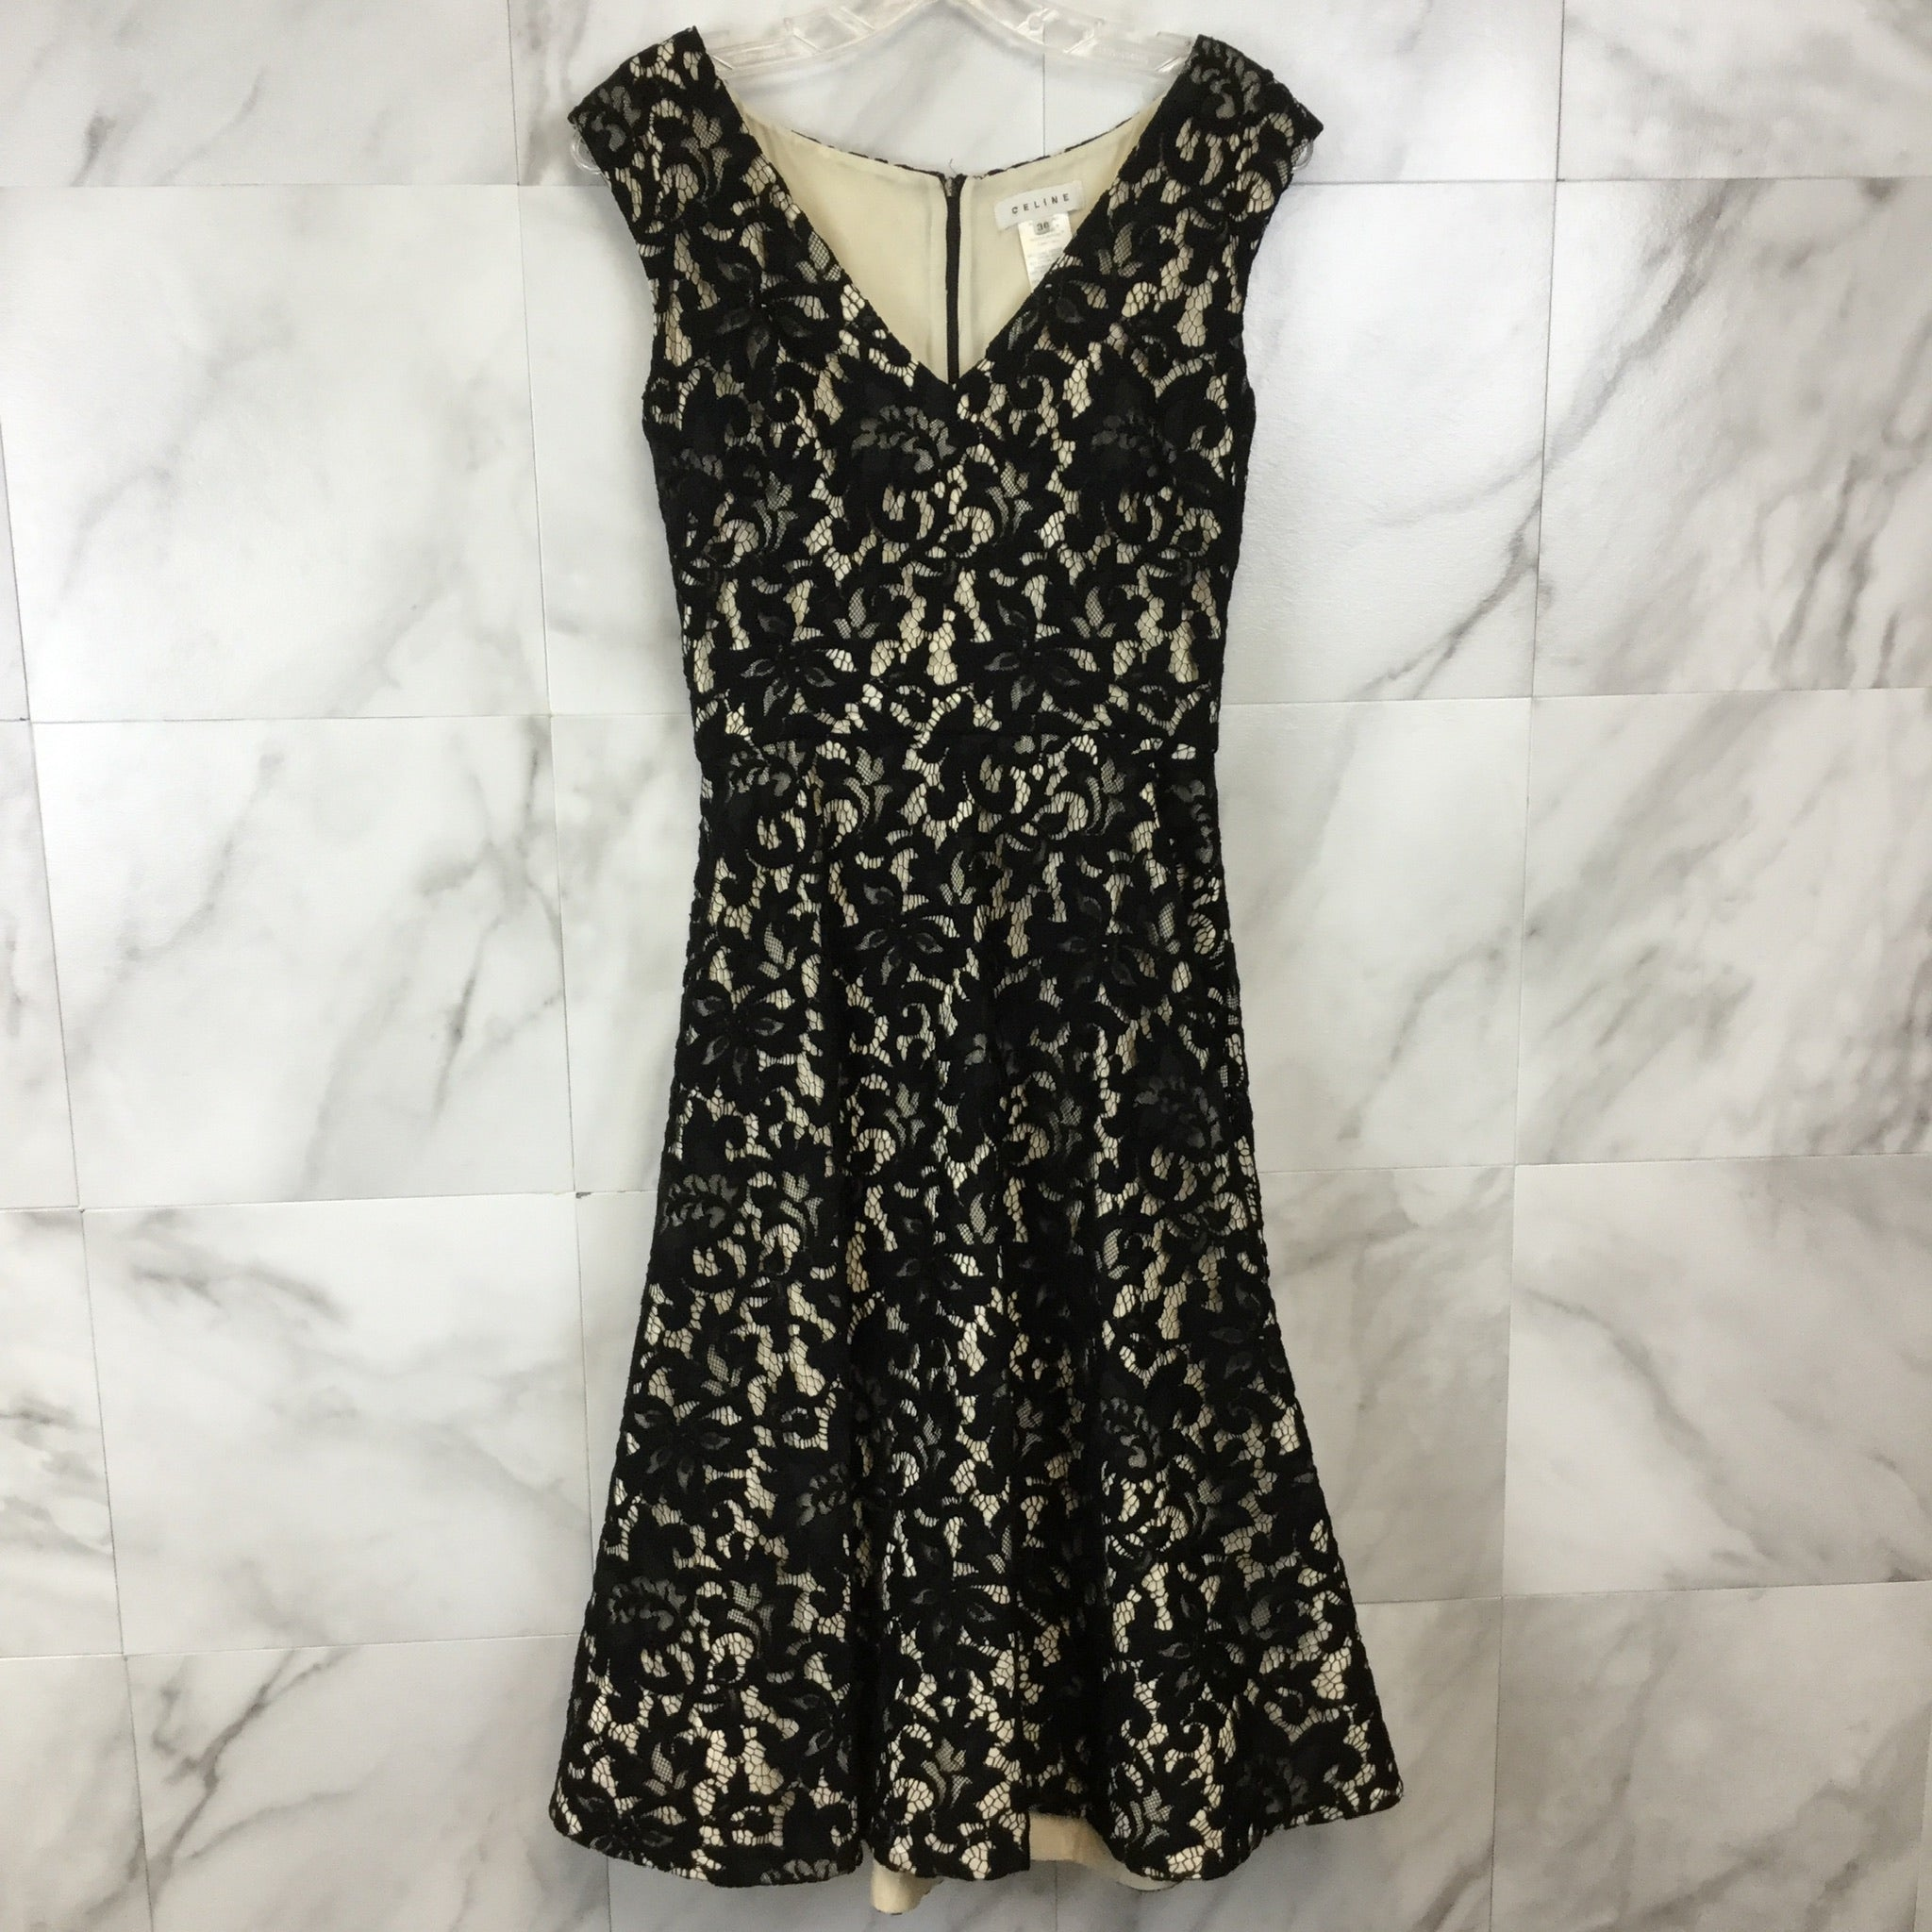 Celine Midi Lace Dress - size 6